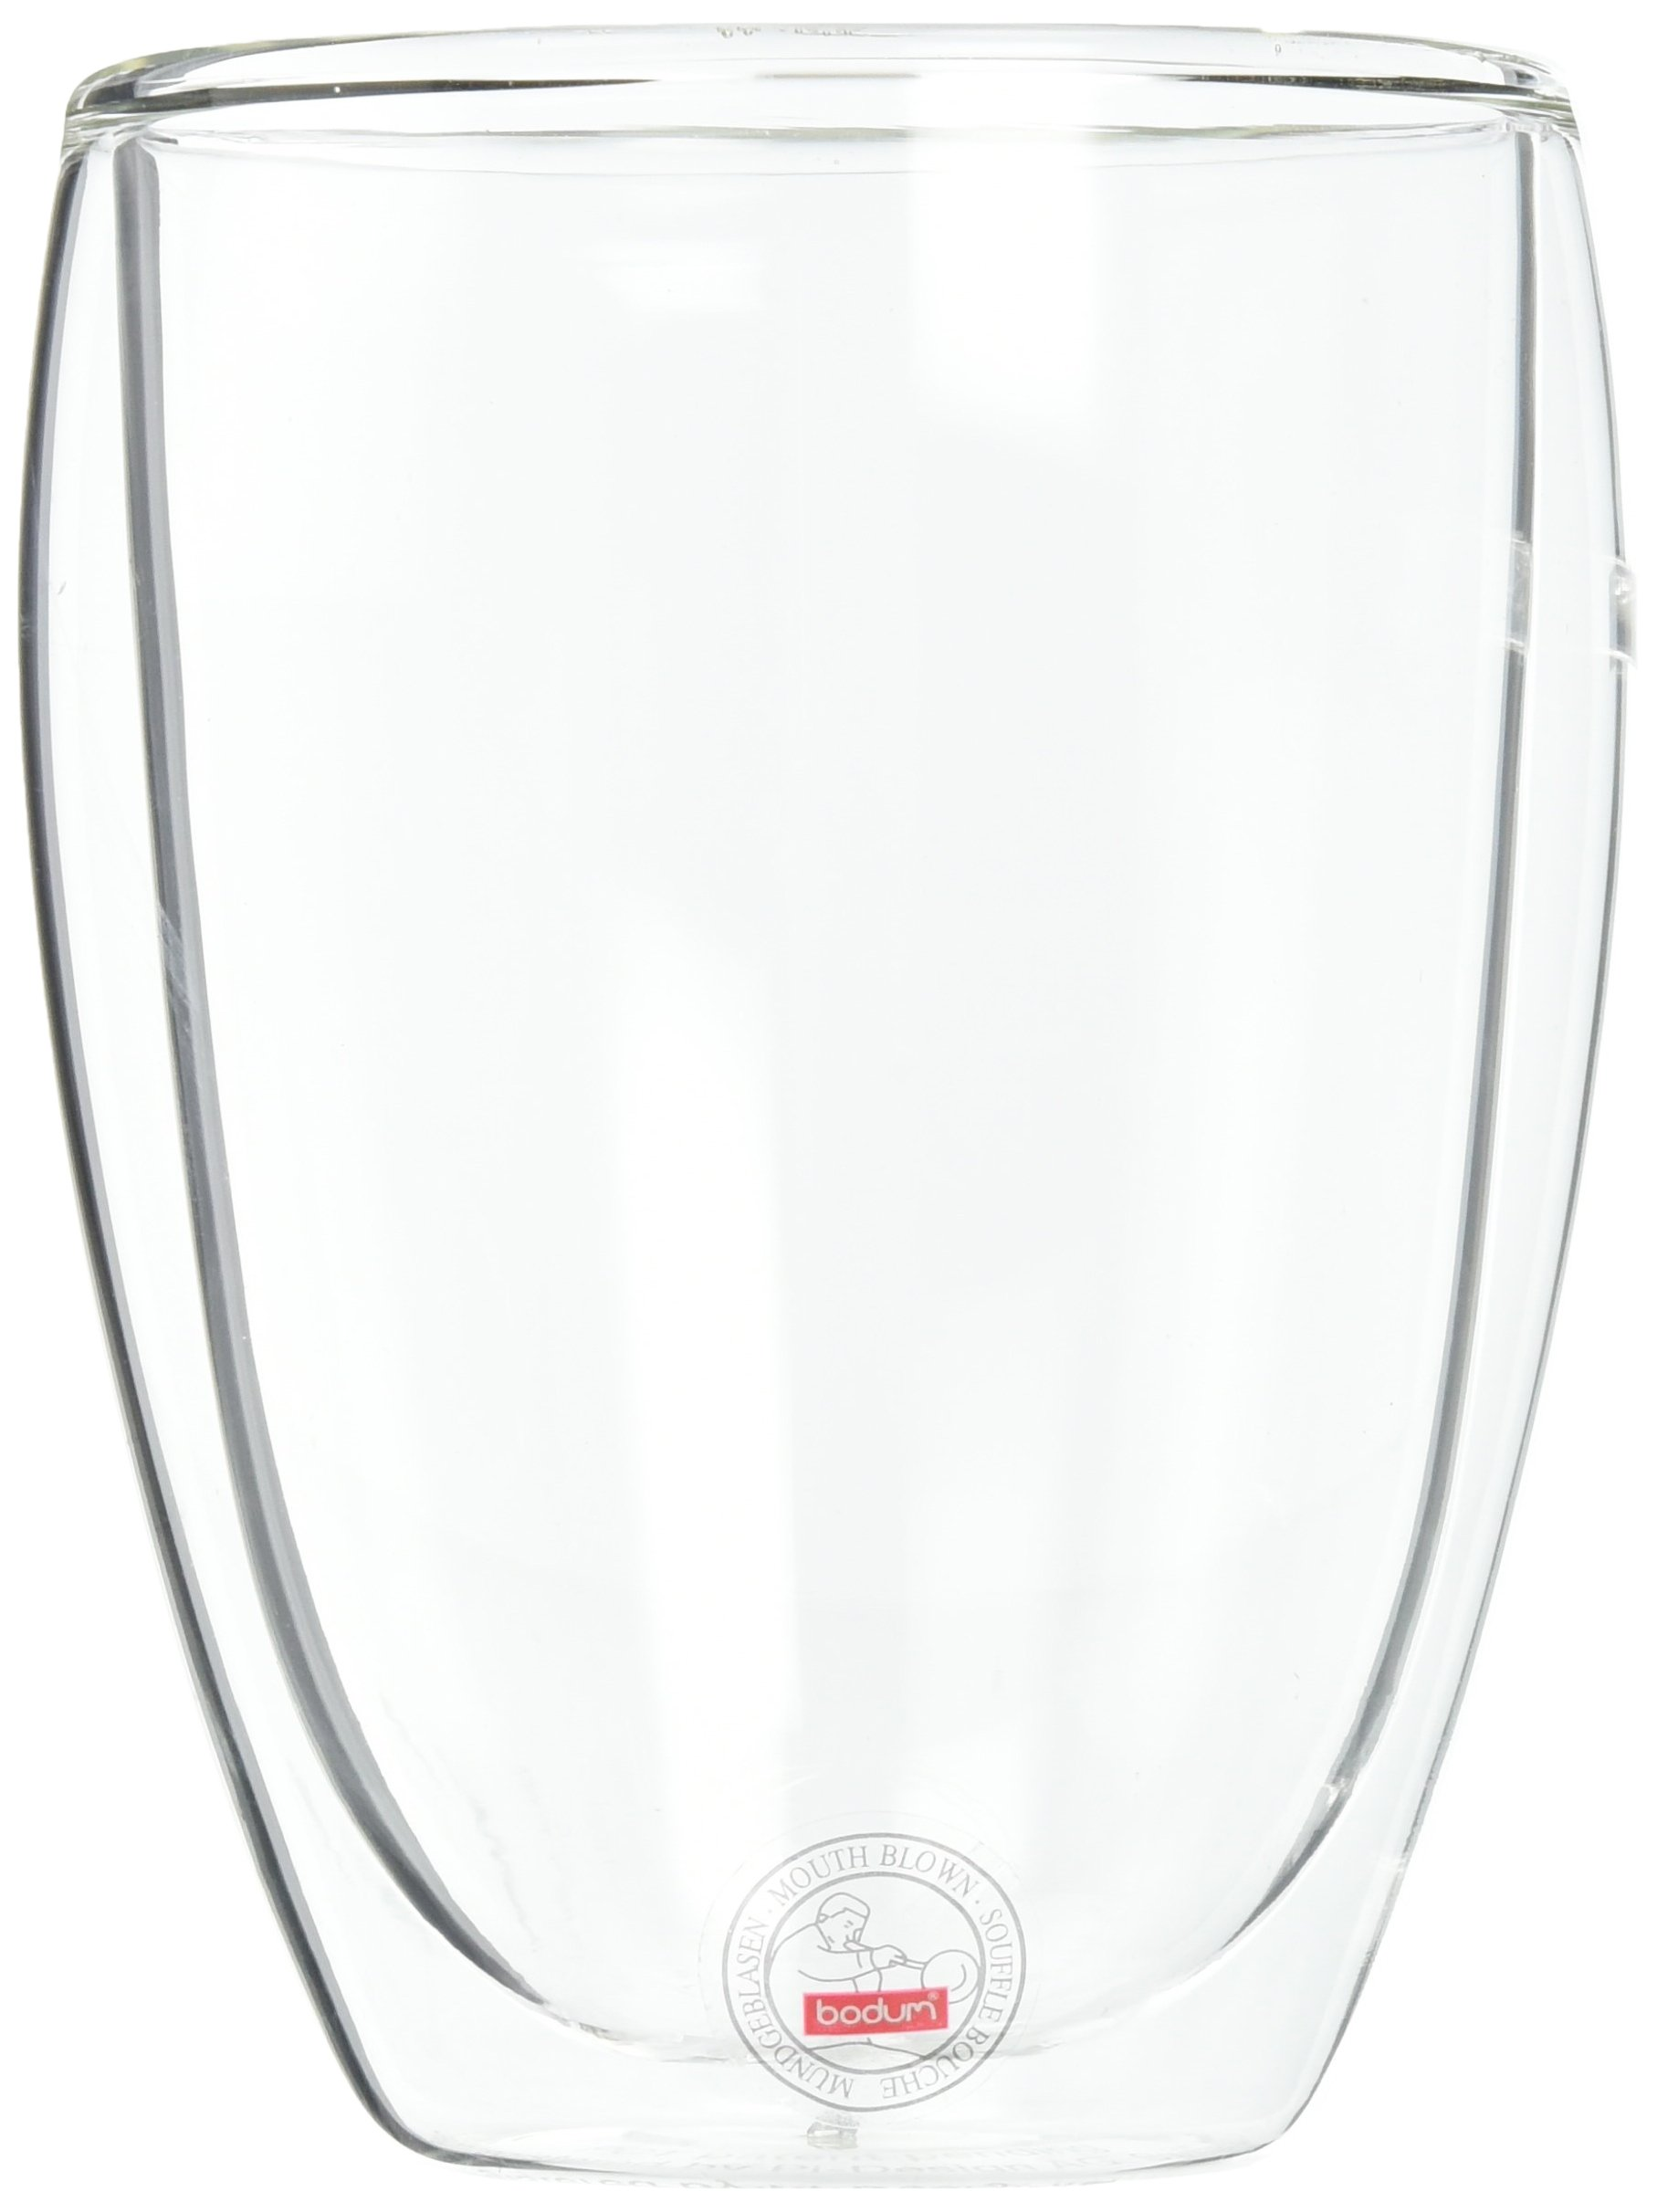 Bodum Pavina Coffee Mug, Double-Wall Insulated Glass Mug, Clear, 12 oz Each (Pack of 6)